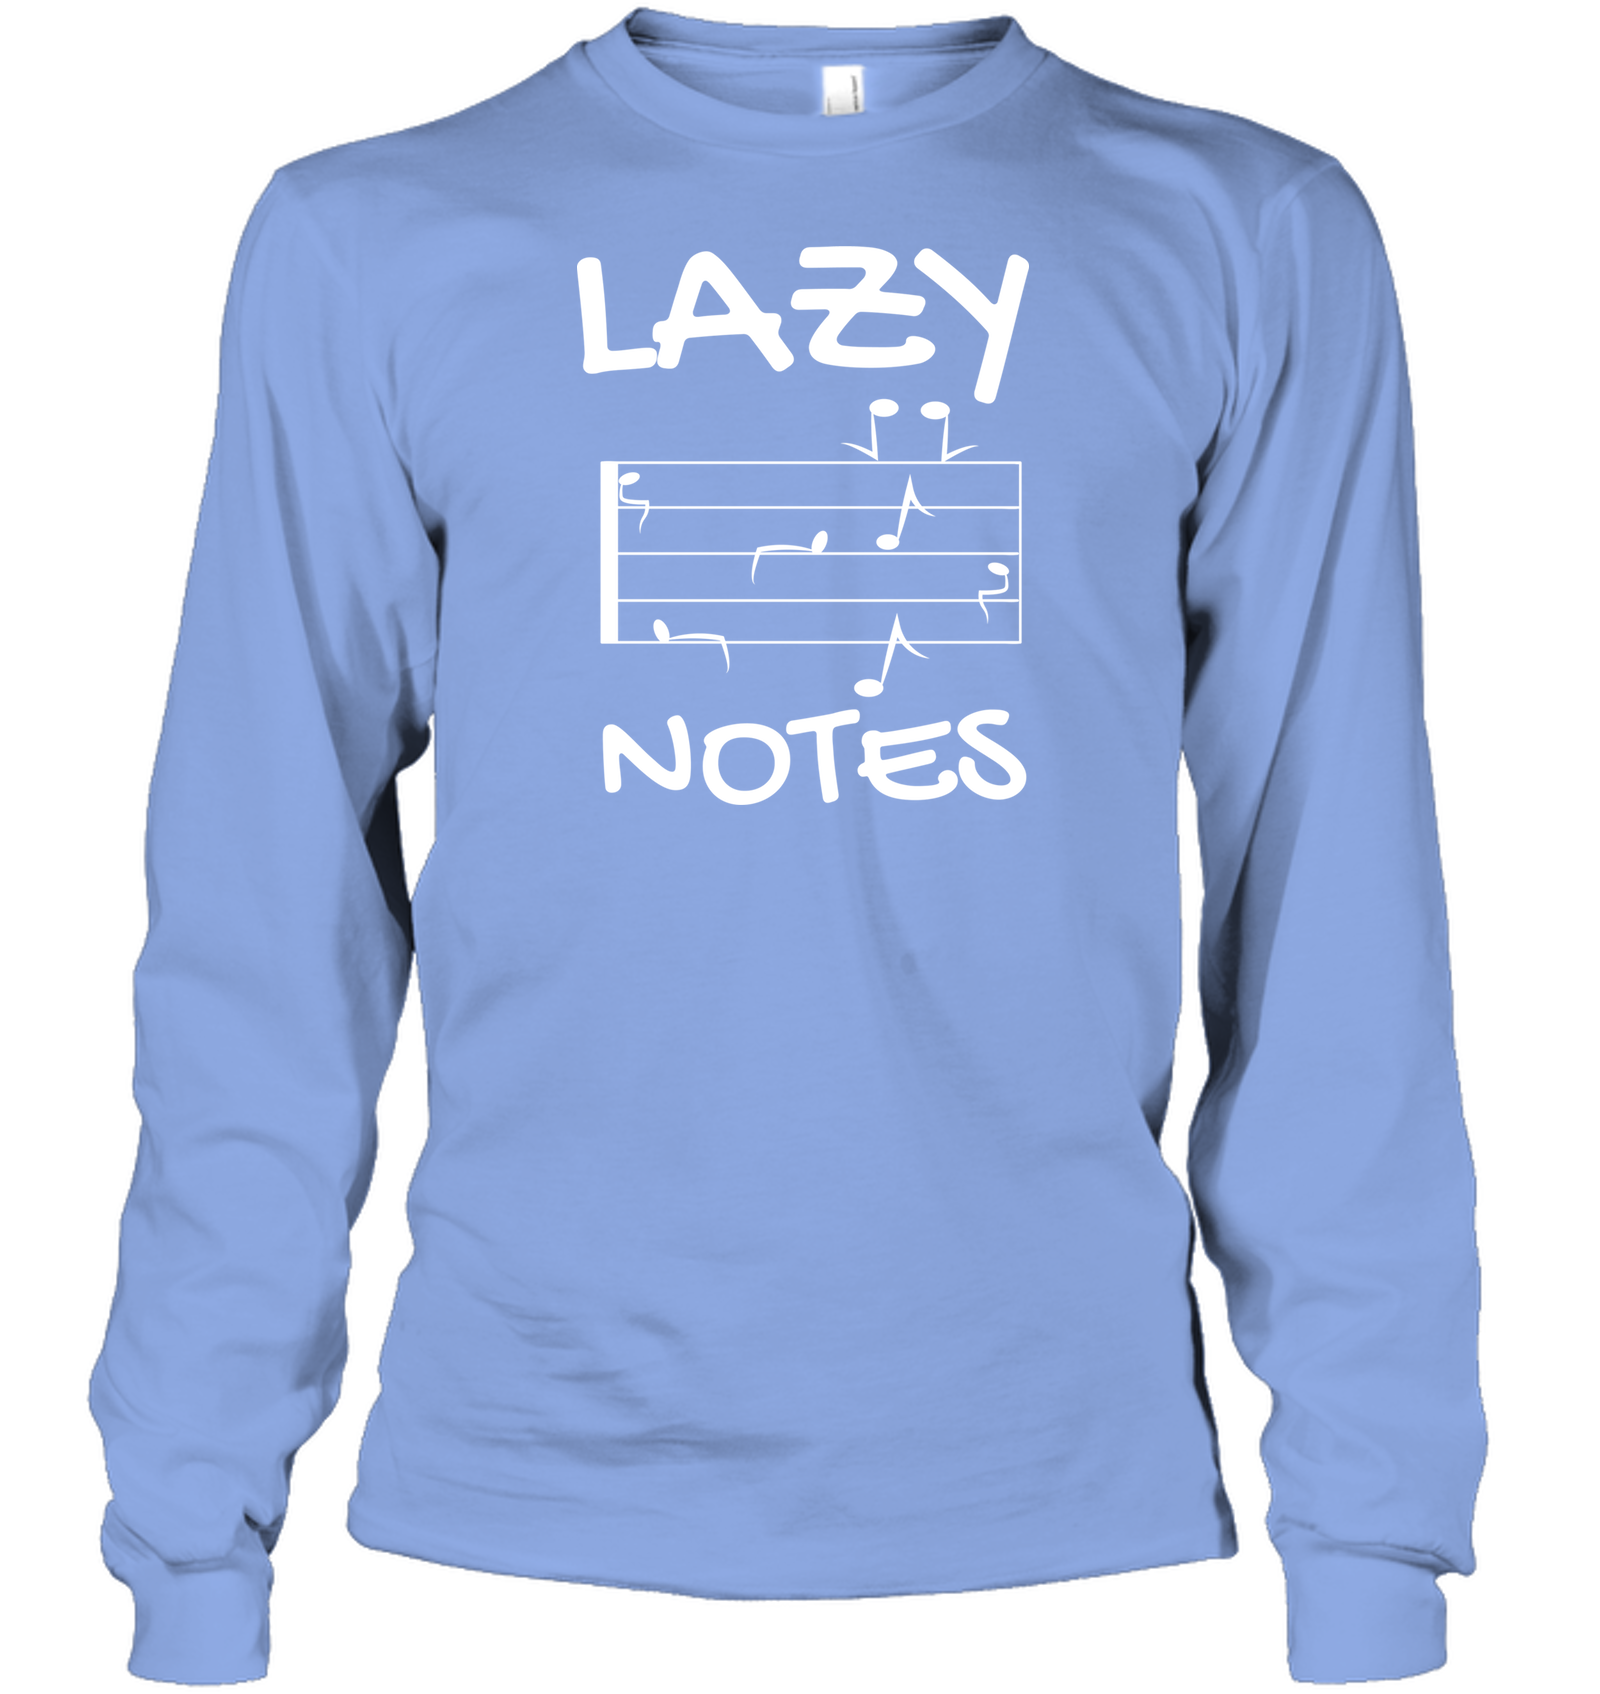 Lazy Notes - Gildan Adult Classic Long Sleeve T-Shirt